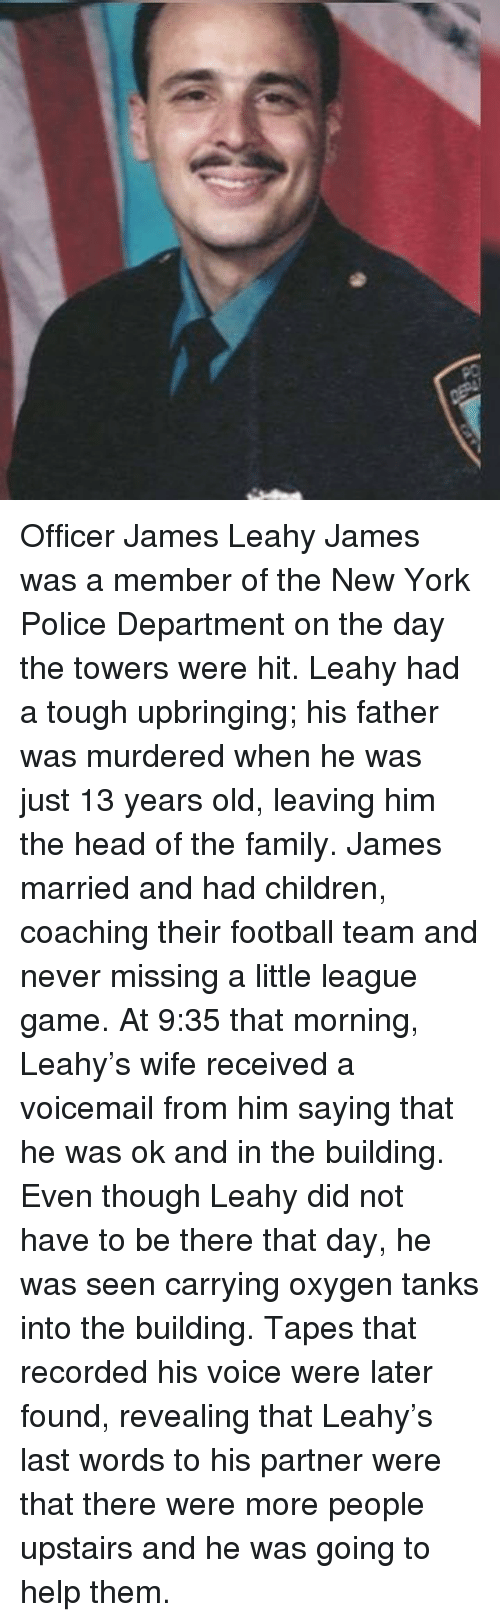 Children, Family, and Football: Officer James Leahy James was a member of the New York Police Department on the day the towers were hit. Leahy had a tough upbringing; his father was murdered when he was just 13 years old, leaving him the head of the family. James married and had children, coaching their football team and never missing a little league game. At 9:35 that morning, Leahy's wife received a voicemail from him saying that he was ok and in the building. Even though Leahy did not have to be there that day, he was seen carrying oxygen tanks into the building. Tapes that recorded his voice were later found, revealing that Leahy's last words to his partner were that there were more people upstairs and he was going to help them.